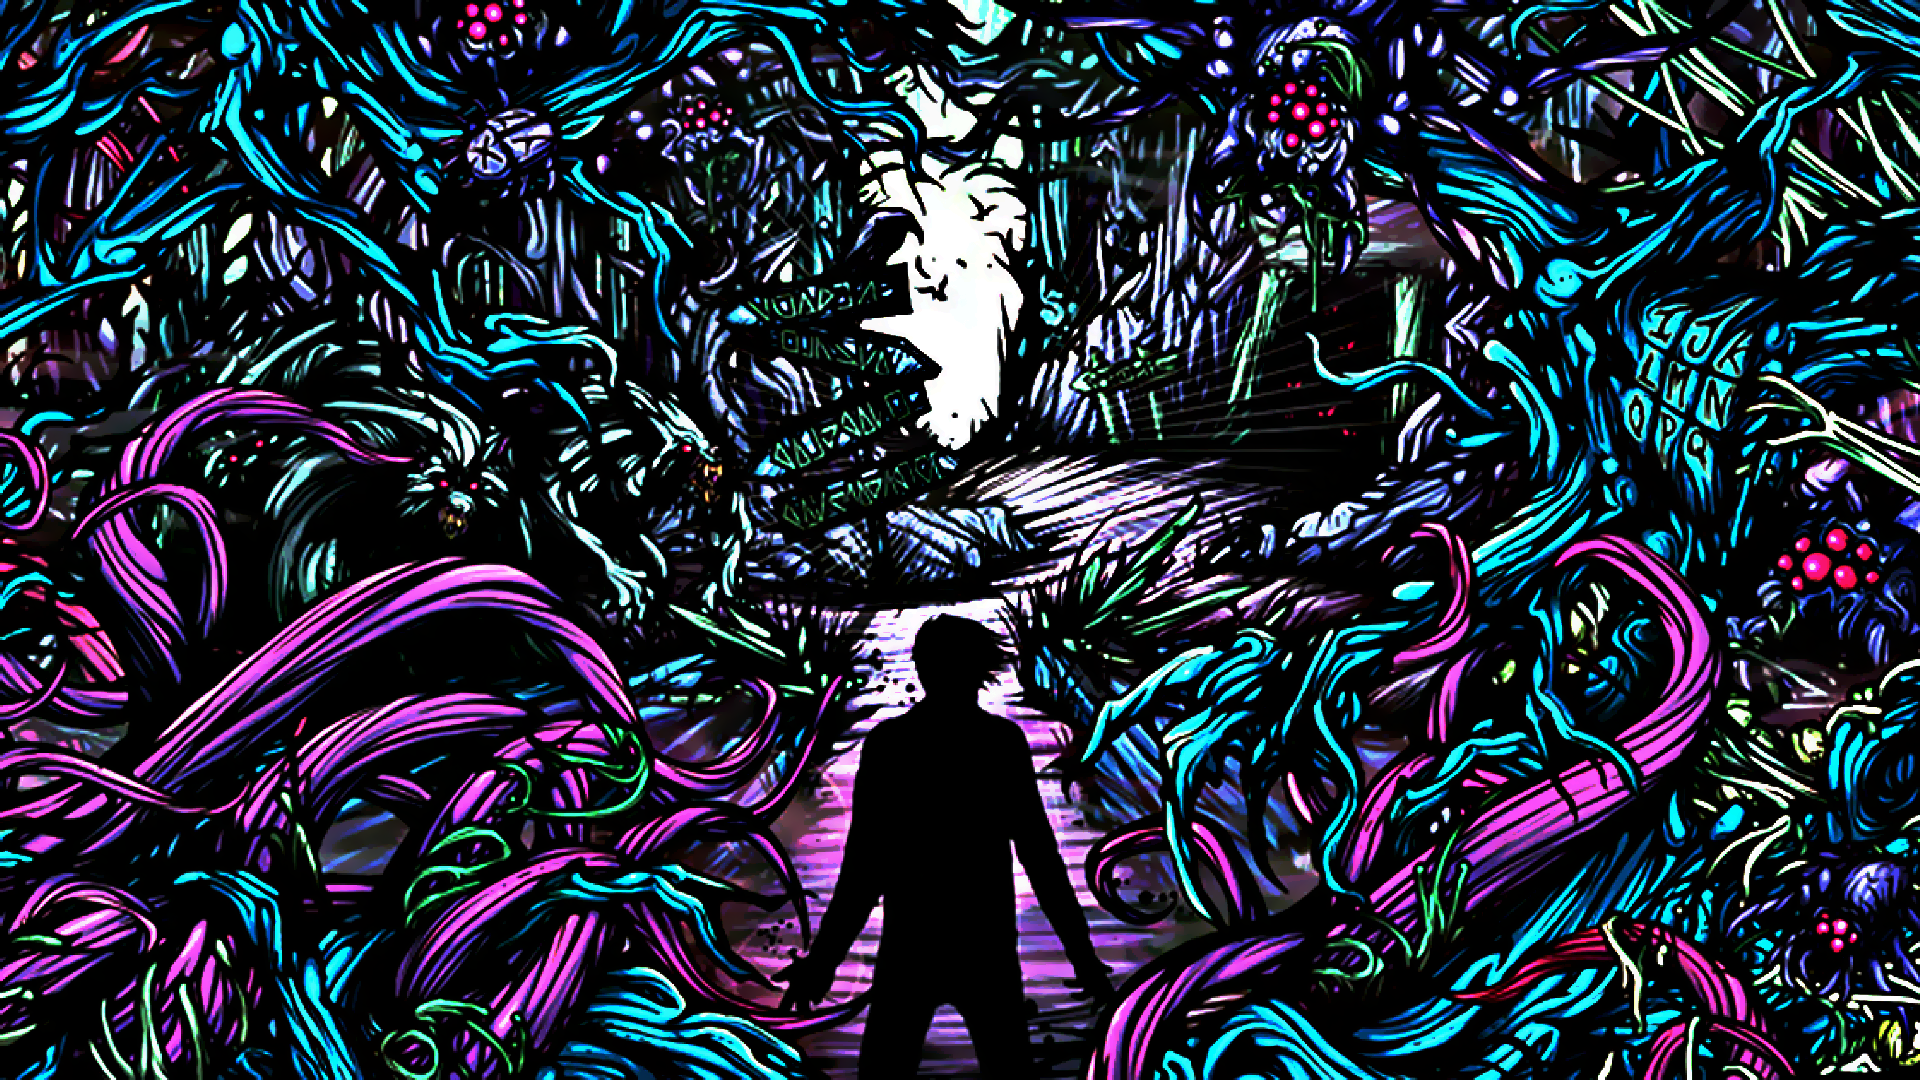 A Day To Remember Homesick Wallpaper - Bring Me The Horizon Wallpaper Pc , HD Wallpaper & Backgrounds